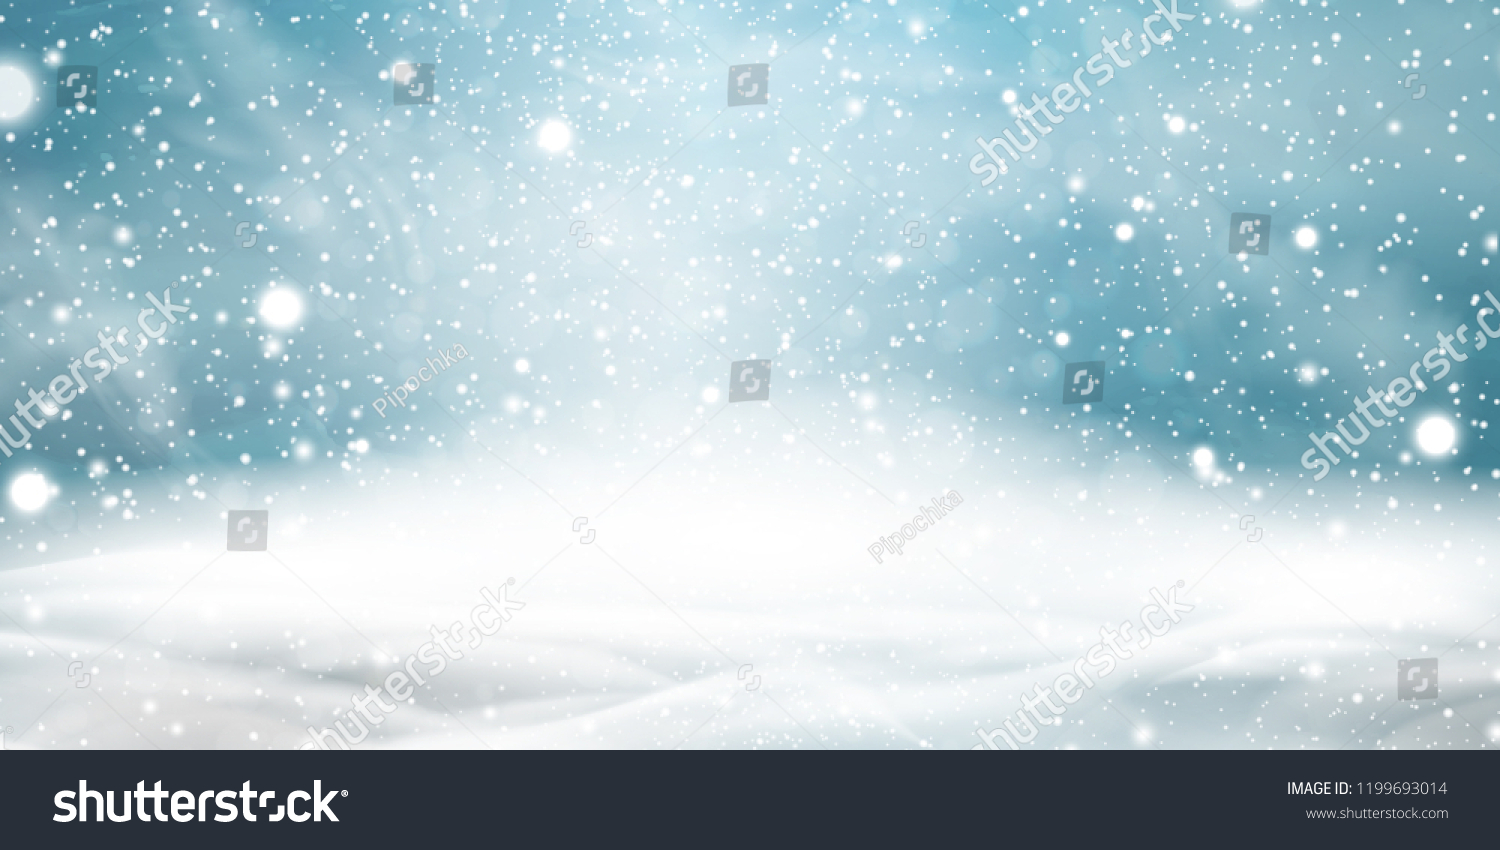 Natural Winter Christmas background with sky, heavy snowfall, snowflakes in different shapes and forms, snowdrifts. Winter landscape with falling christmas shining beautiful snow. vector. #1199693014